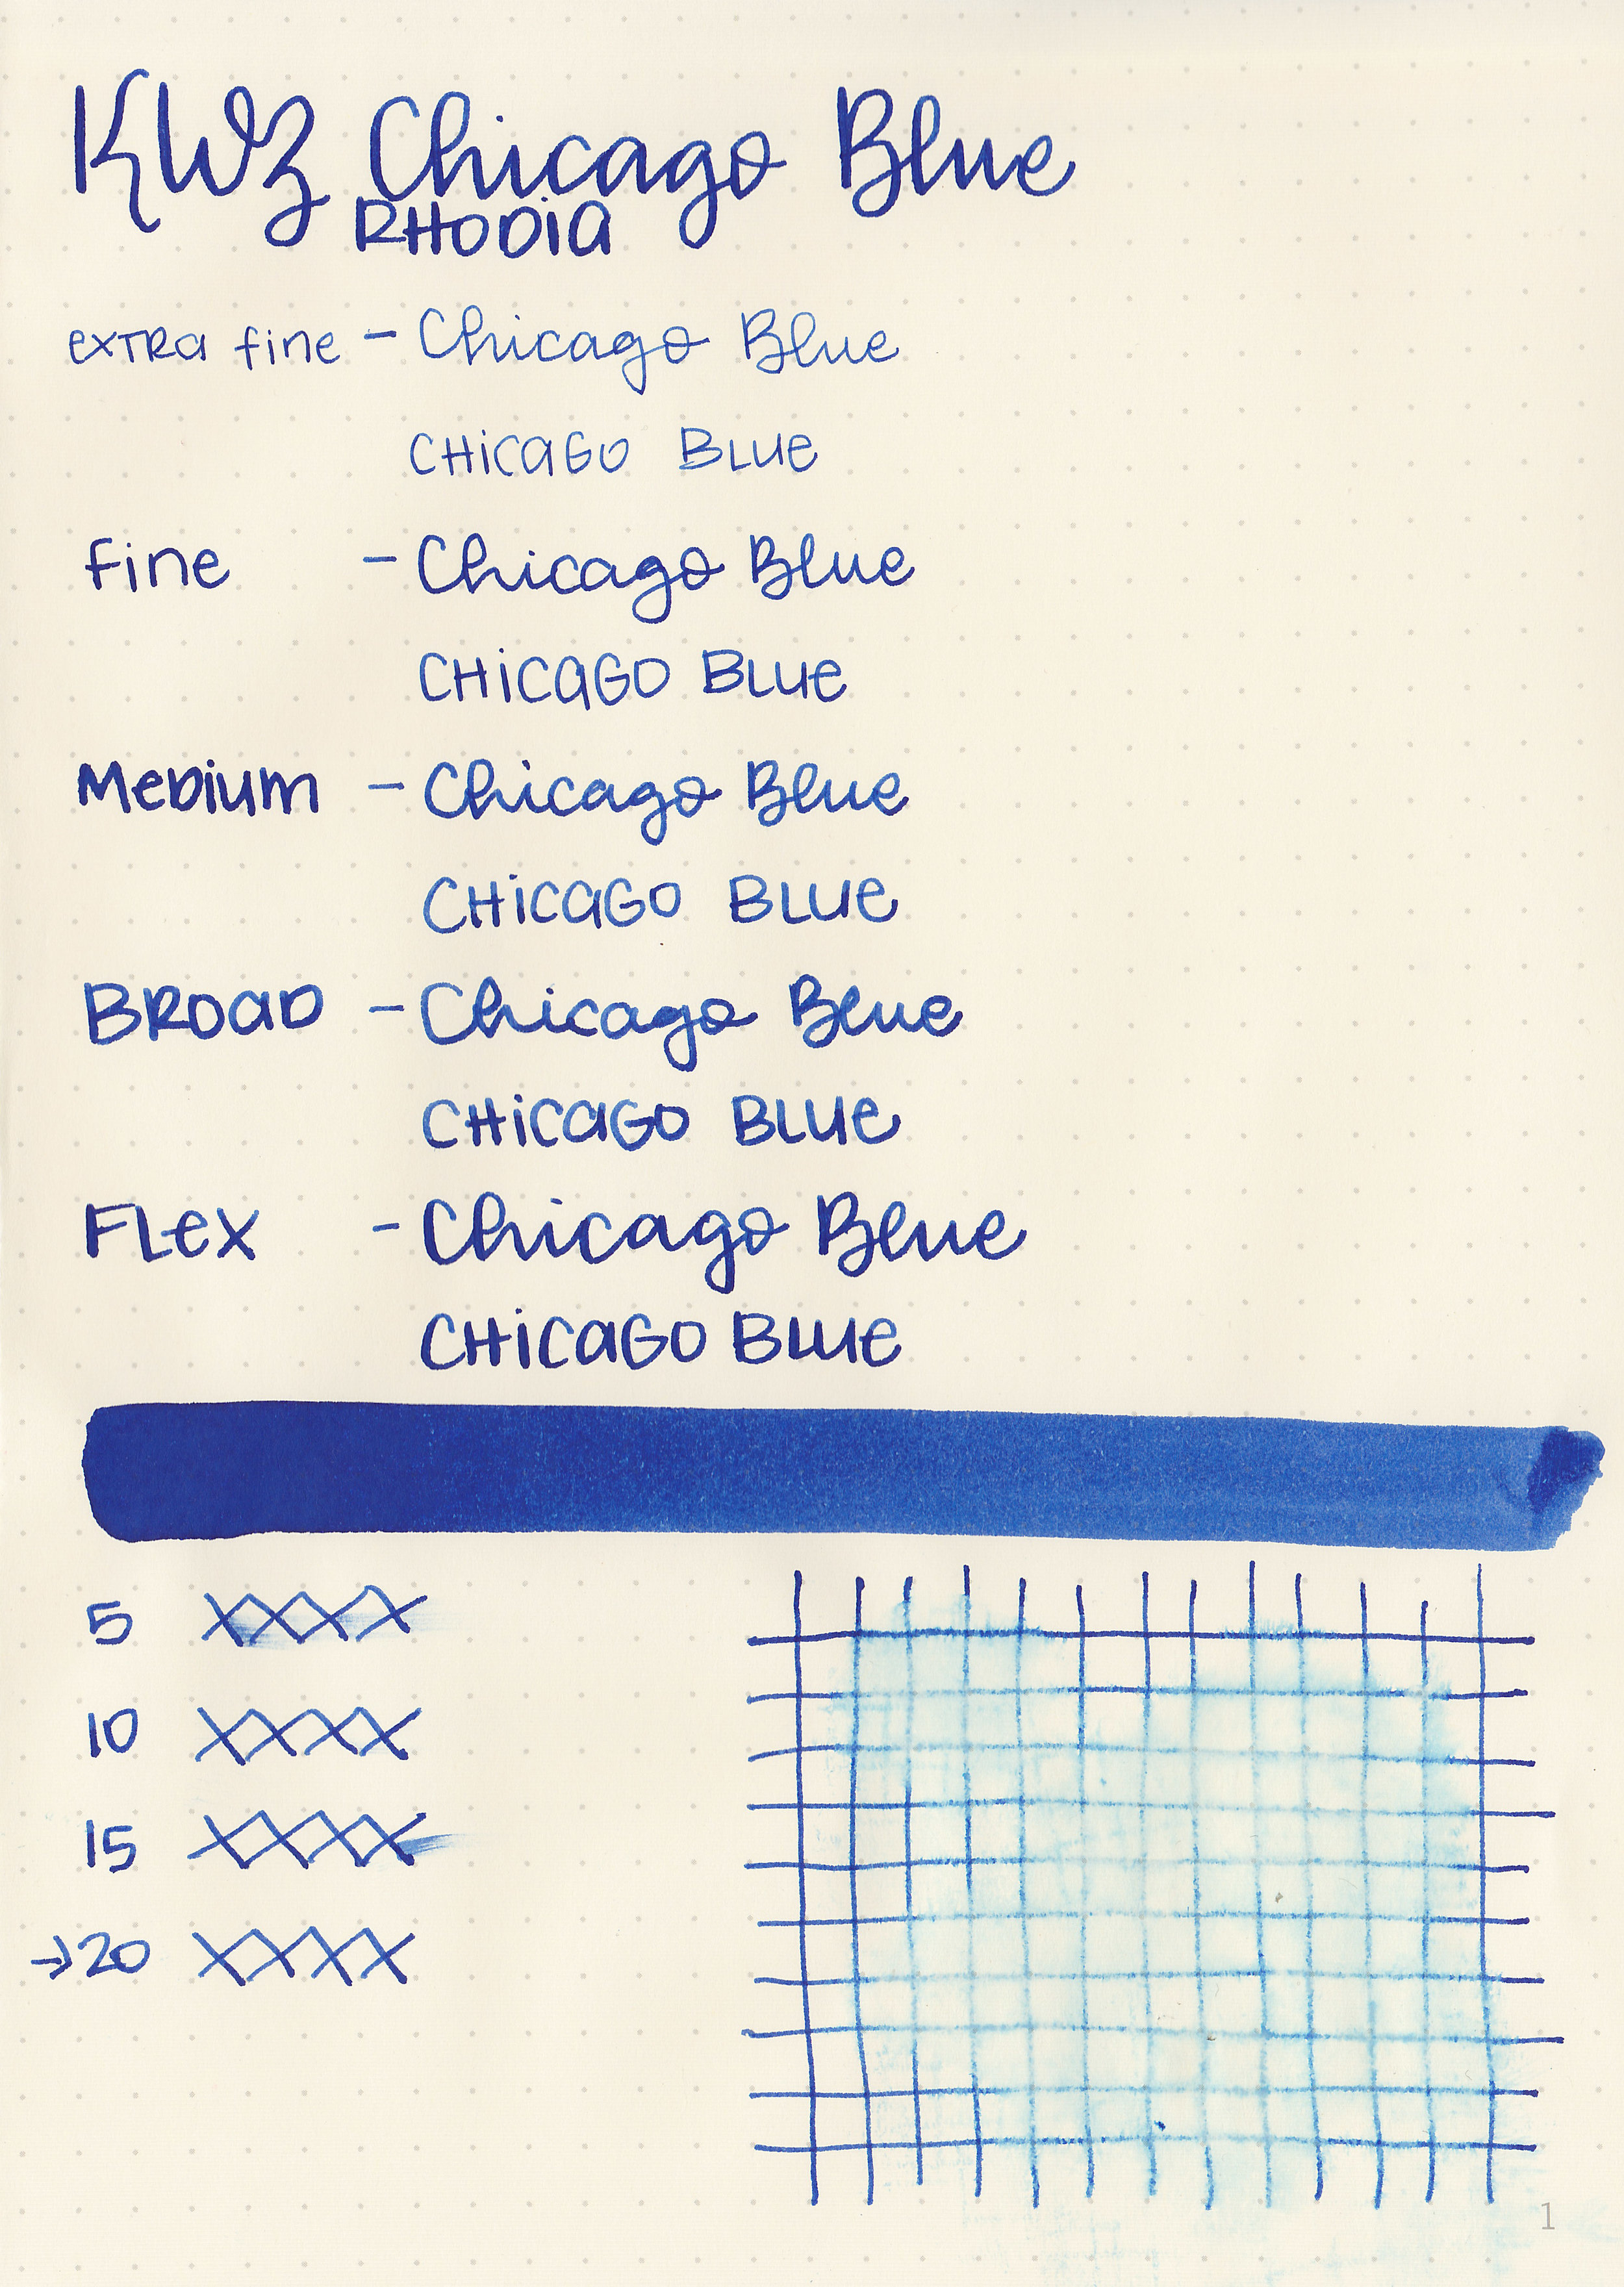 kwz-chicago-blue-5.jpg